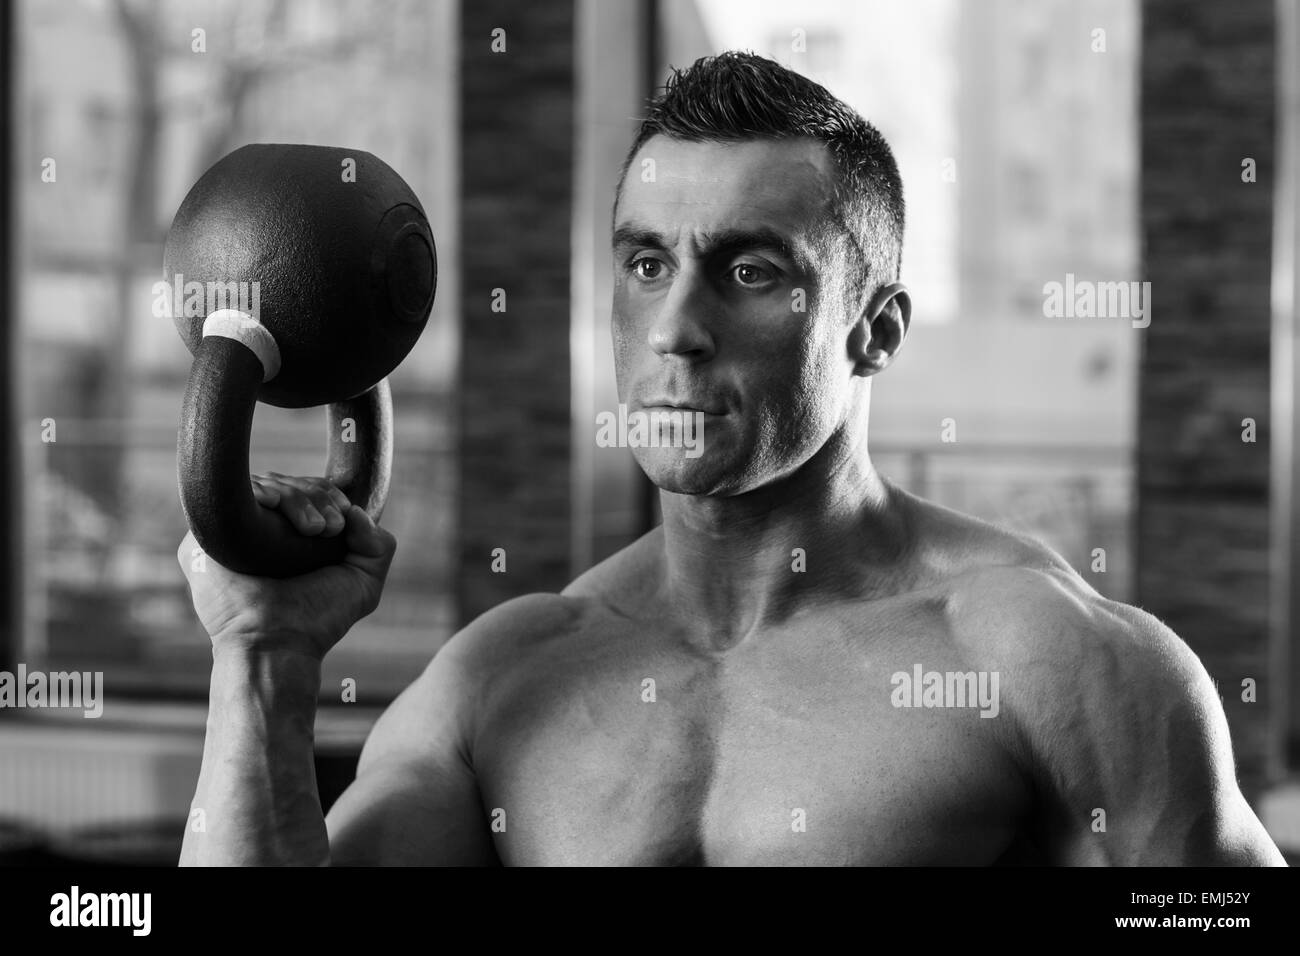 Black and white portrait of a bodybuilder holding kettle ball in gym - Stock Image